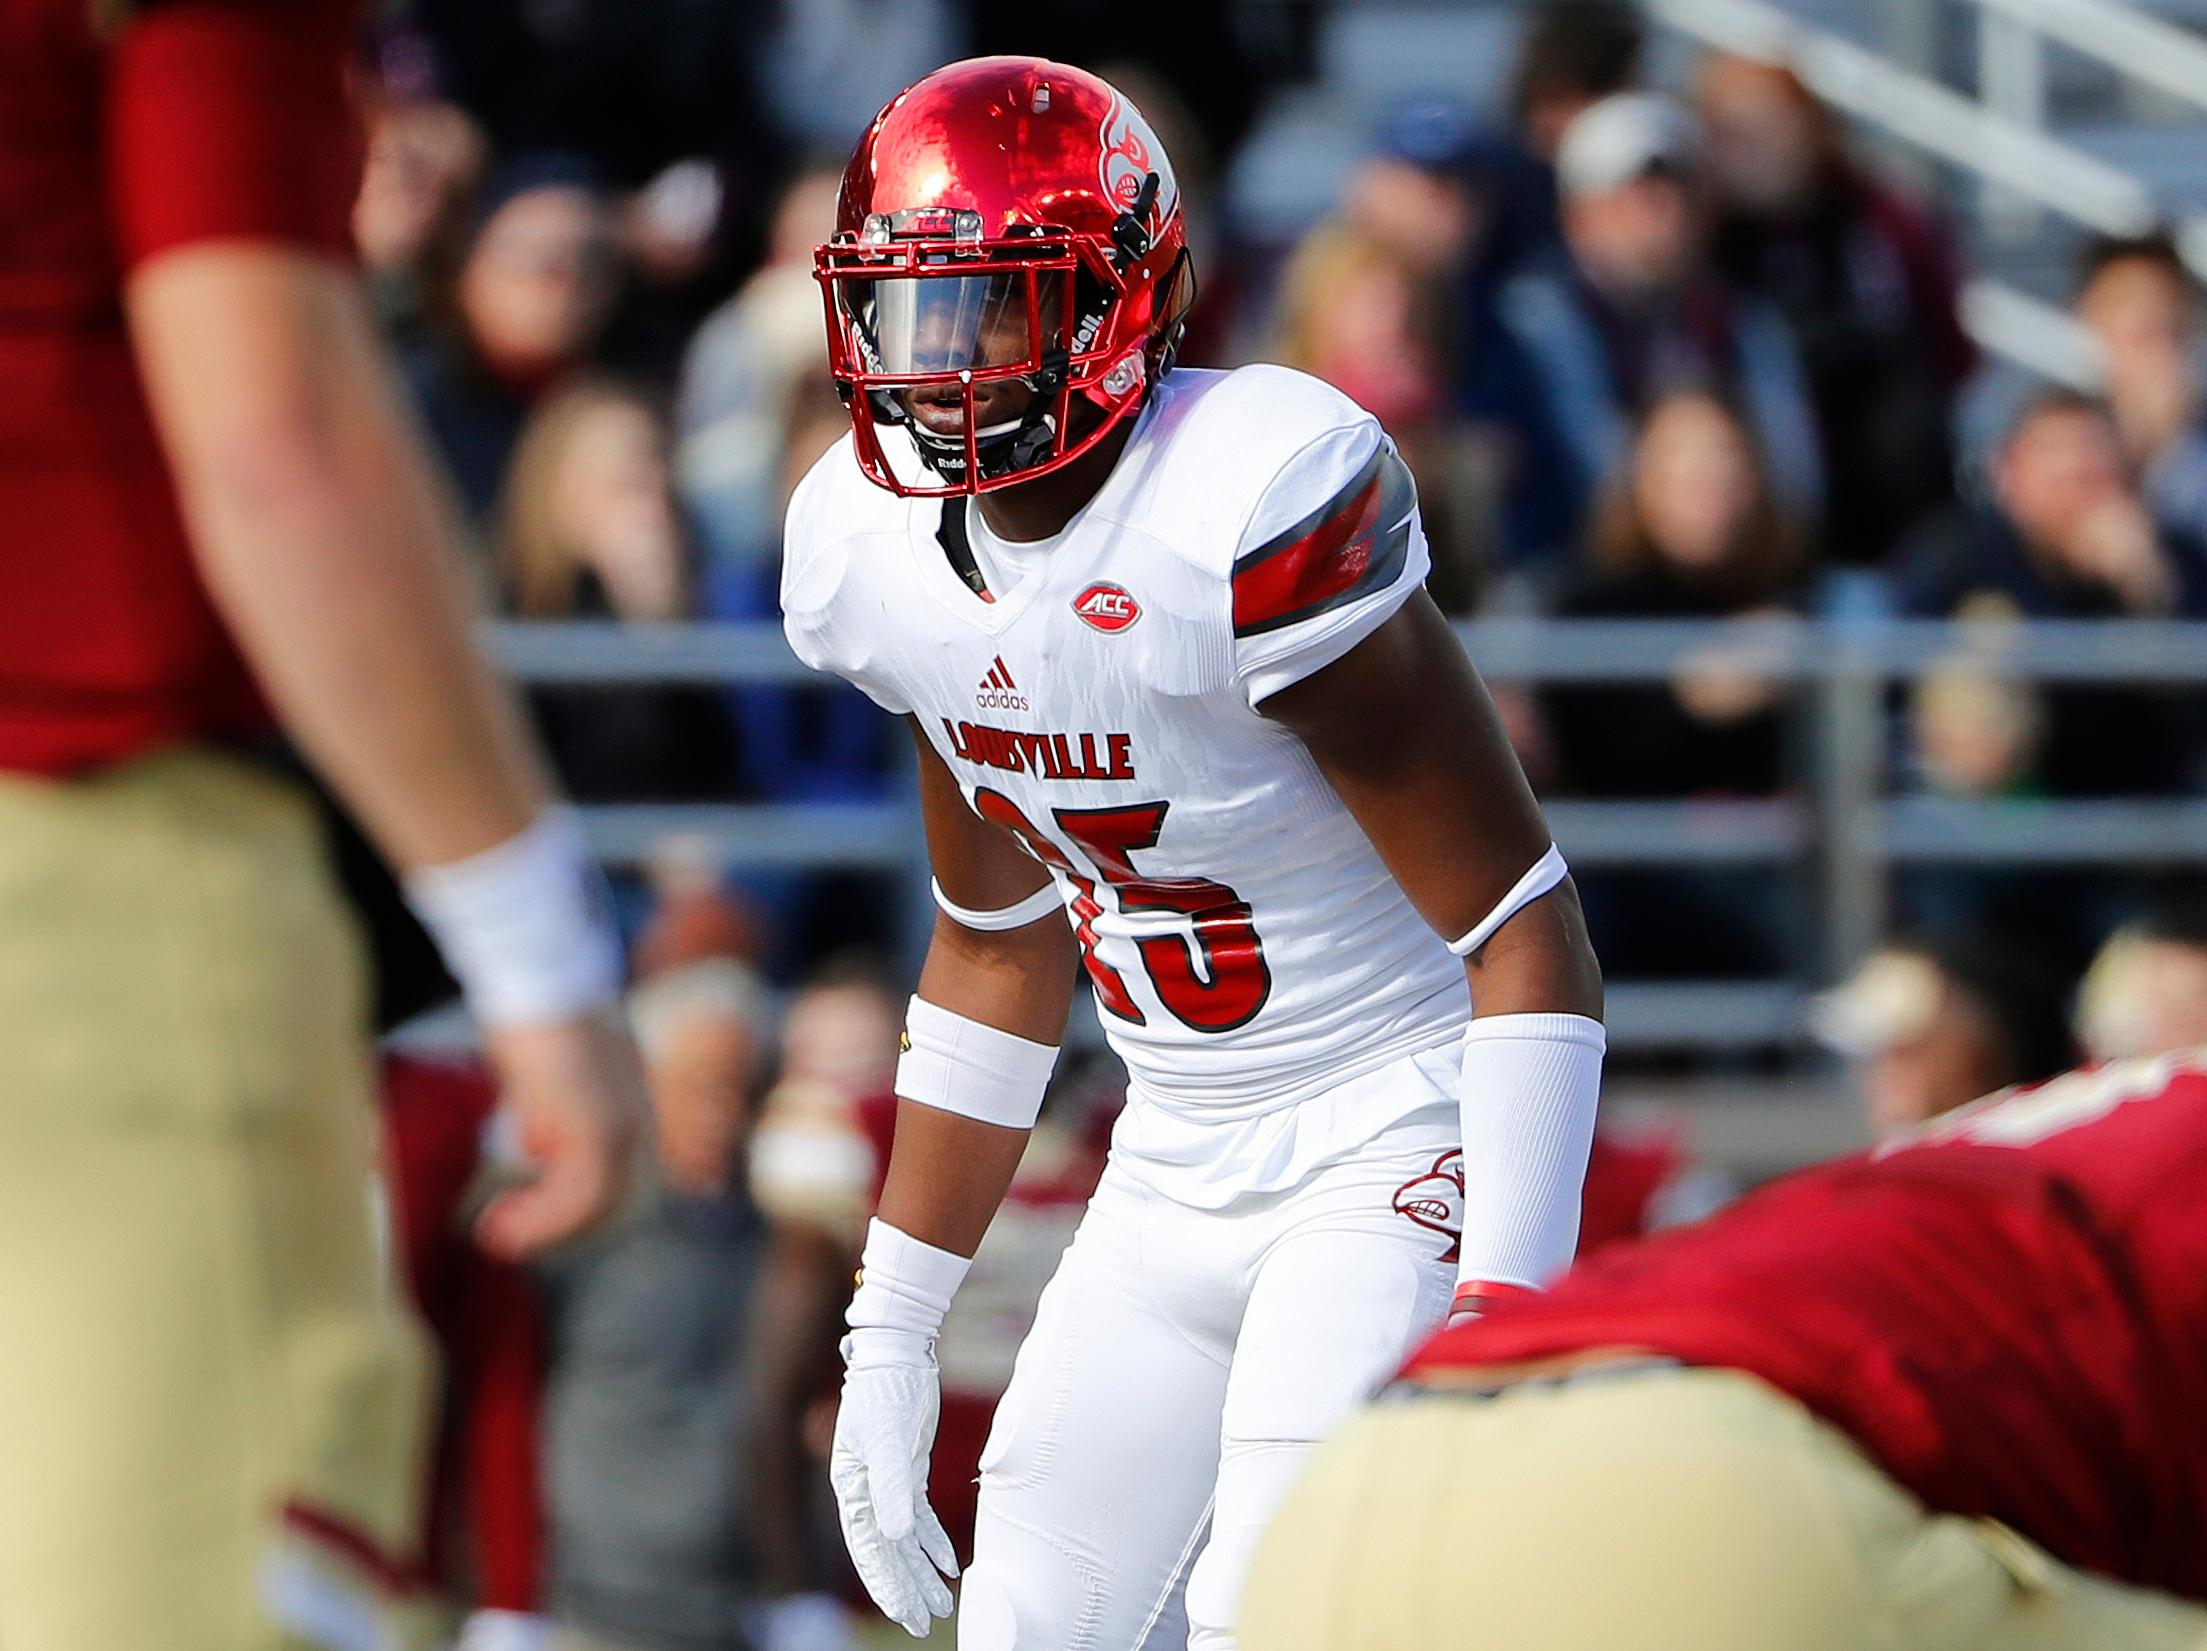 Louisville safety Josh Harvey-Clemons was selected by the Redskins in the seventh round. Harvey-Clemons is pictured during the first half of an NCAA football game against the Boston College at Alumni Stadium in Boston, Mass. Saturday, Nov. 5, 2016. (AP File Photo/Winslow Townson)